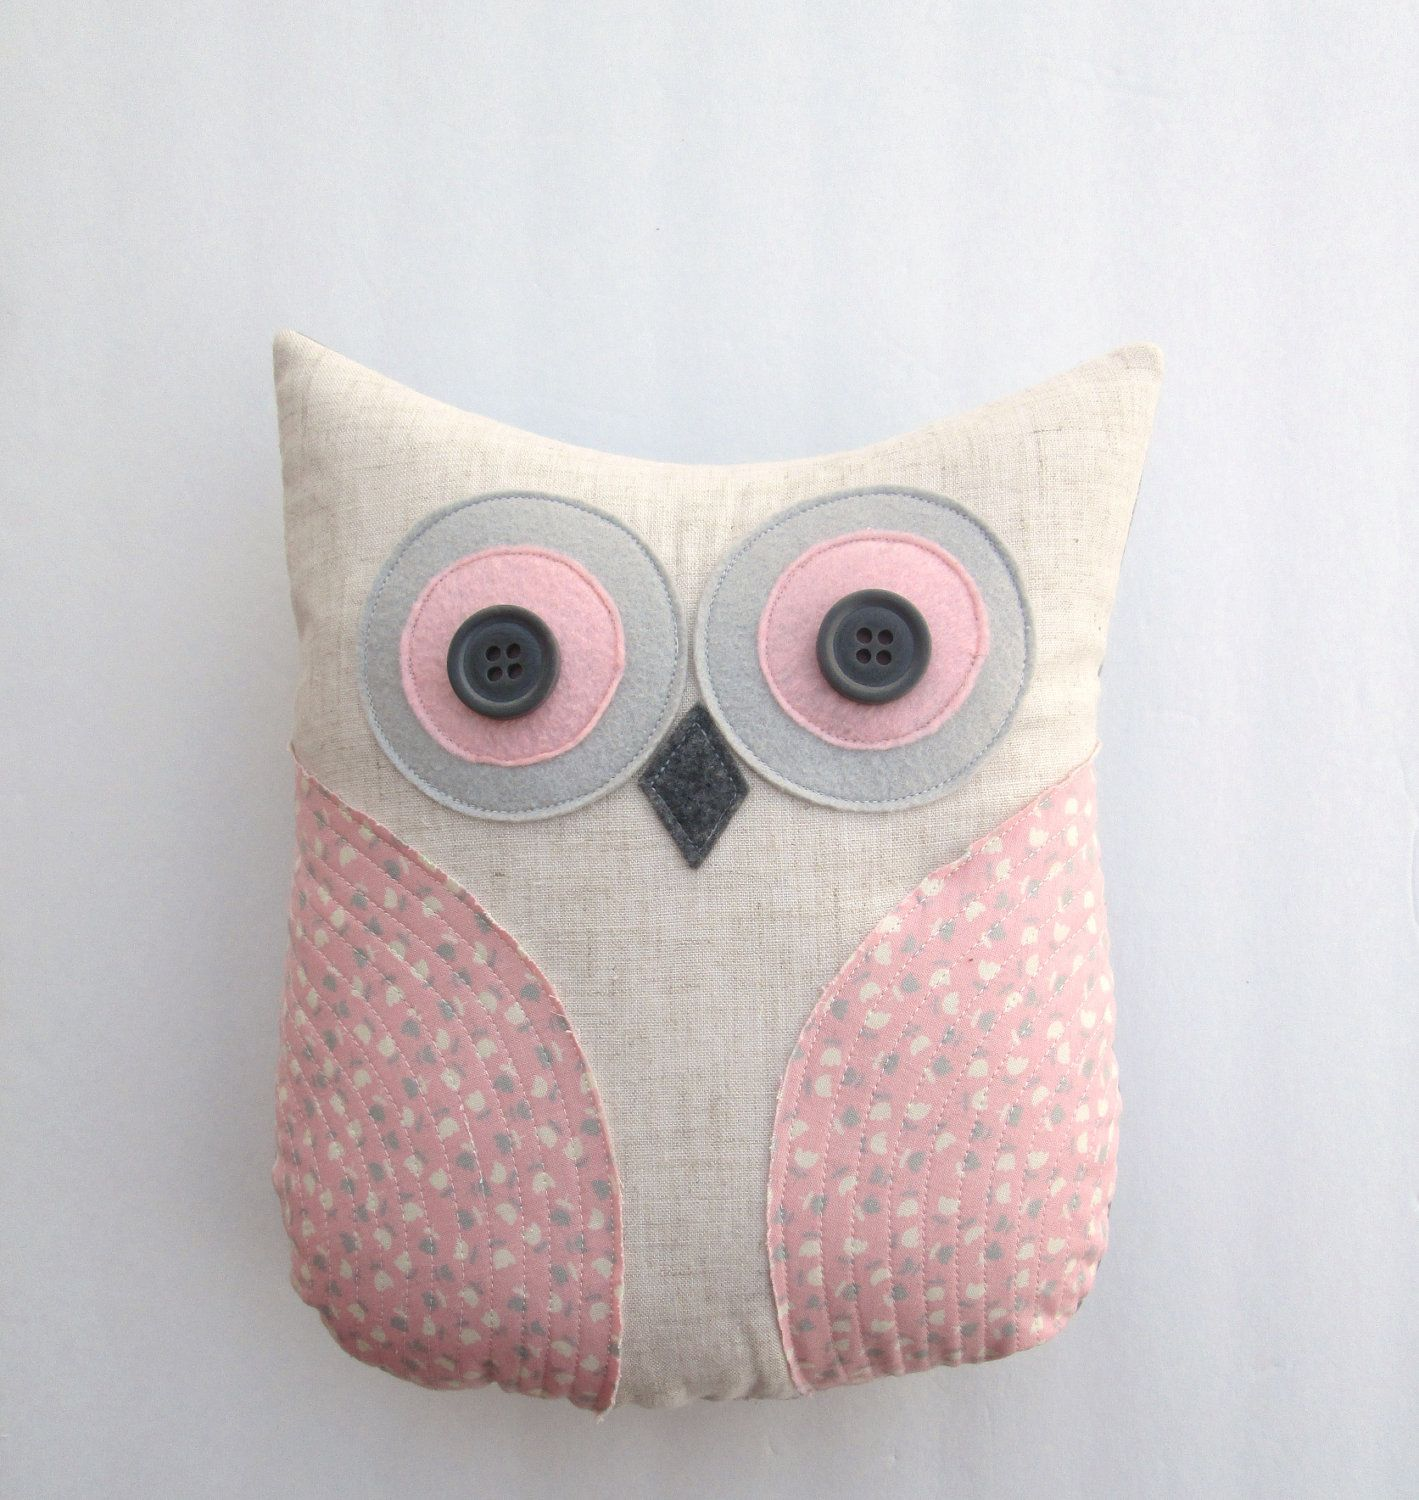 pastel pink owl pillow, decorative pink, grey and white owl, girly ...